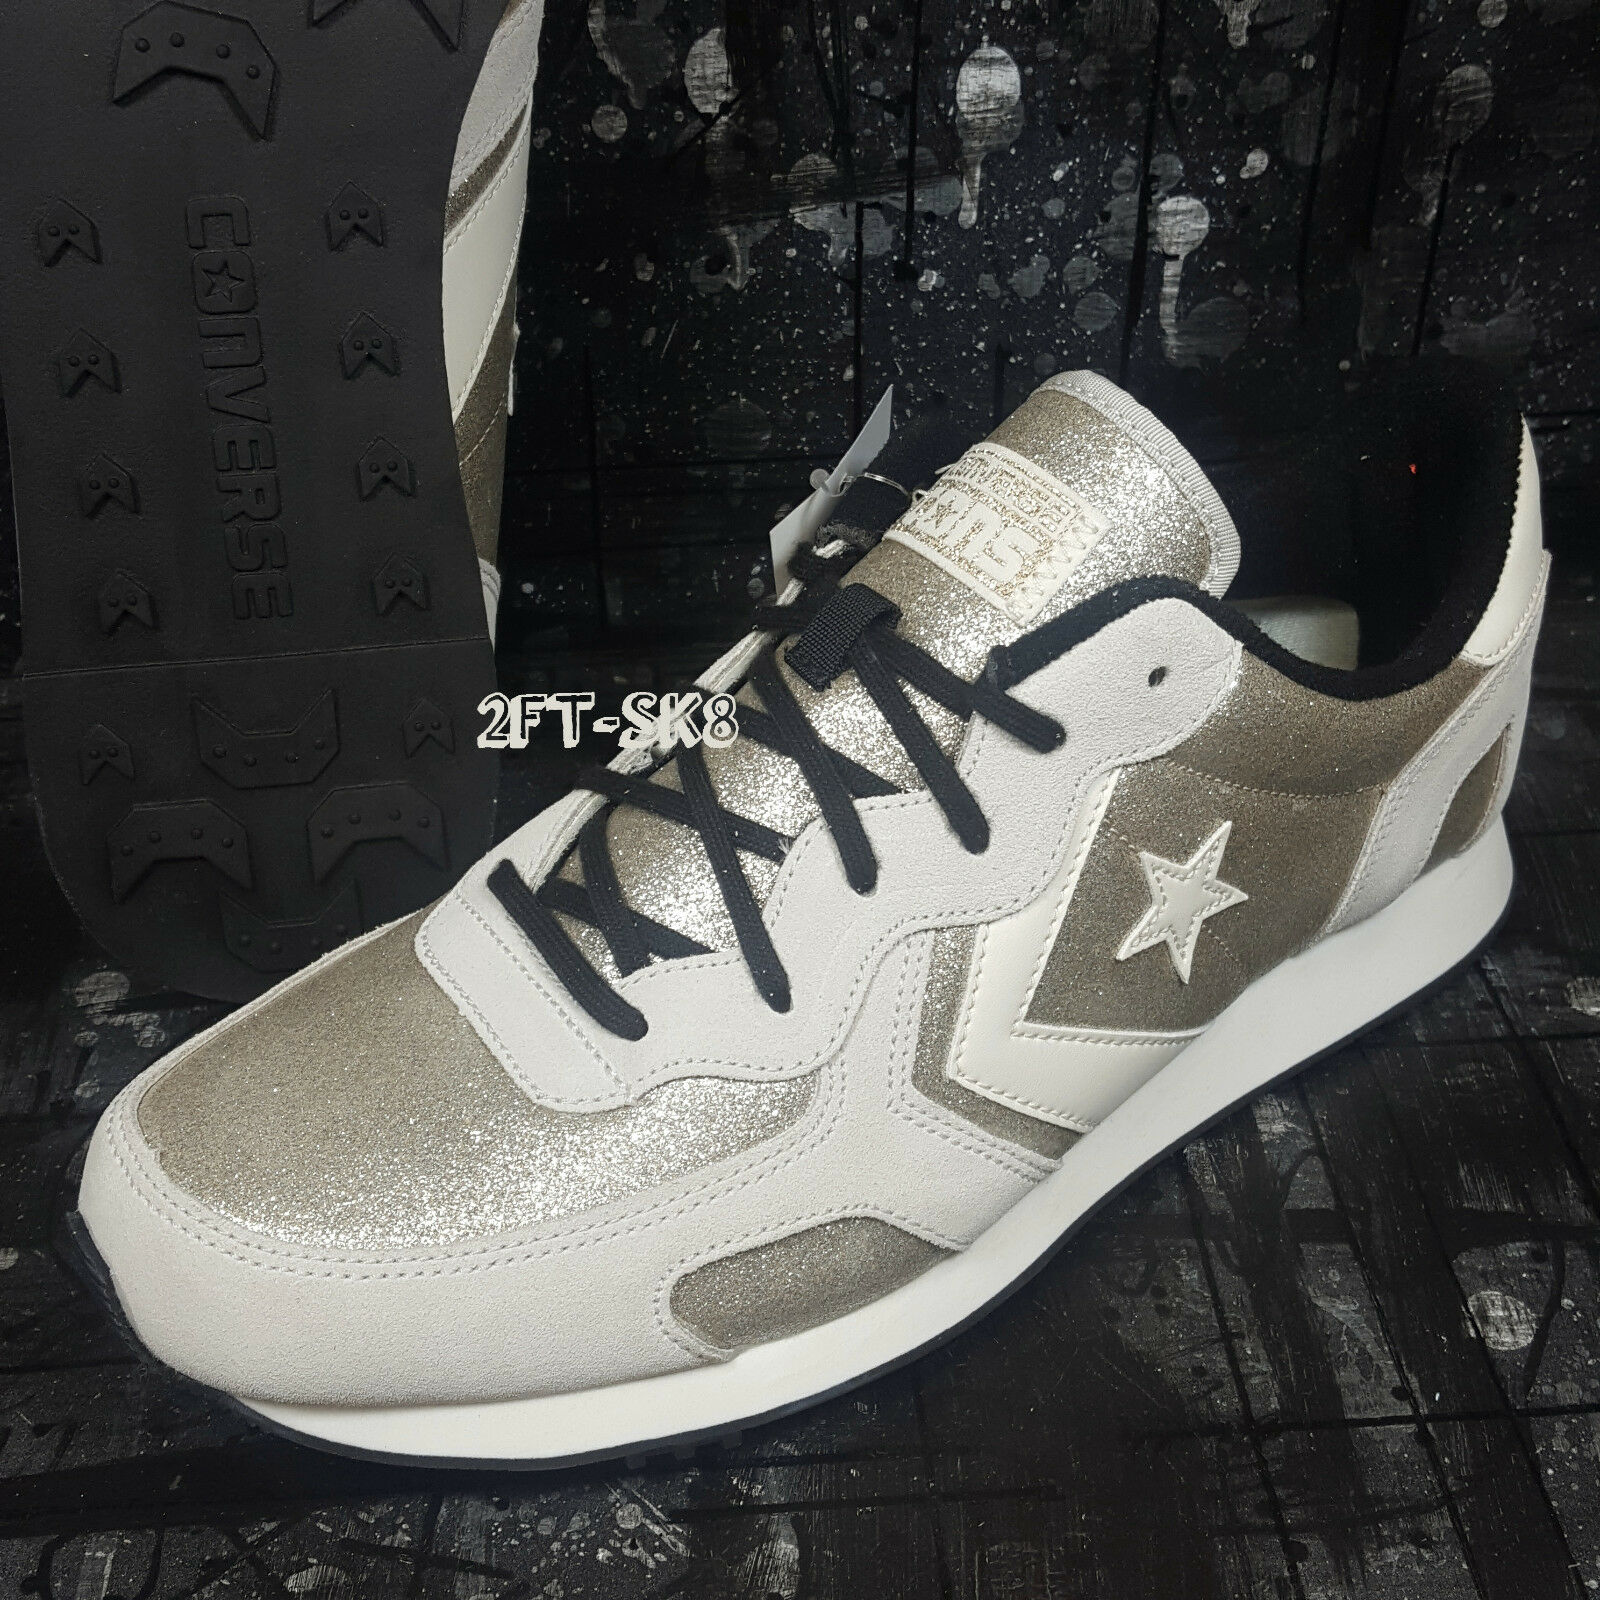 Converse AUCKLAND RACER OX GOLD GREY WHITE MEN'S SKATE SHOES S88128.60